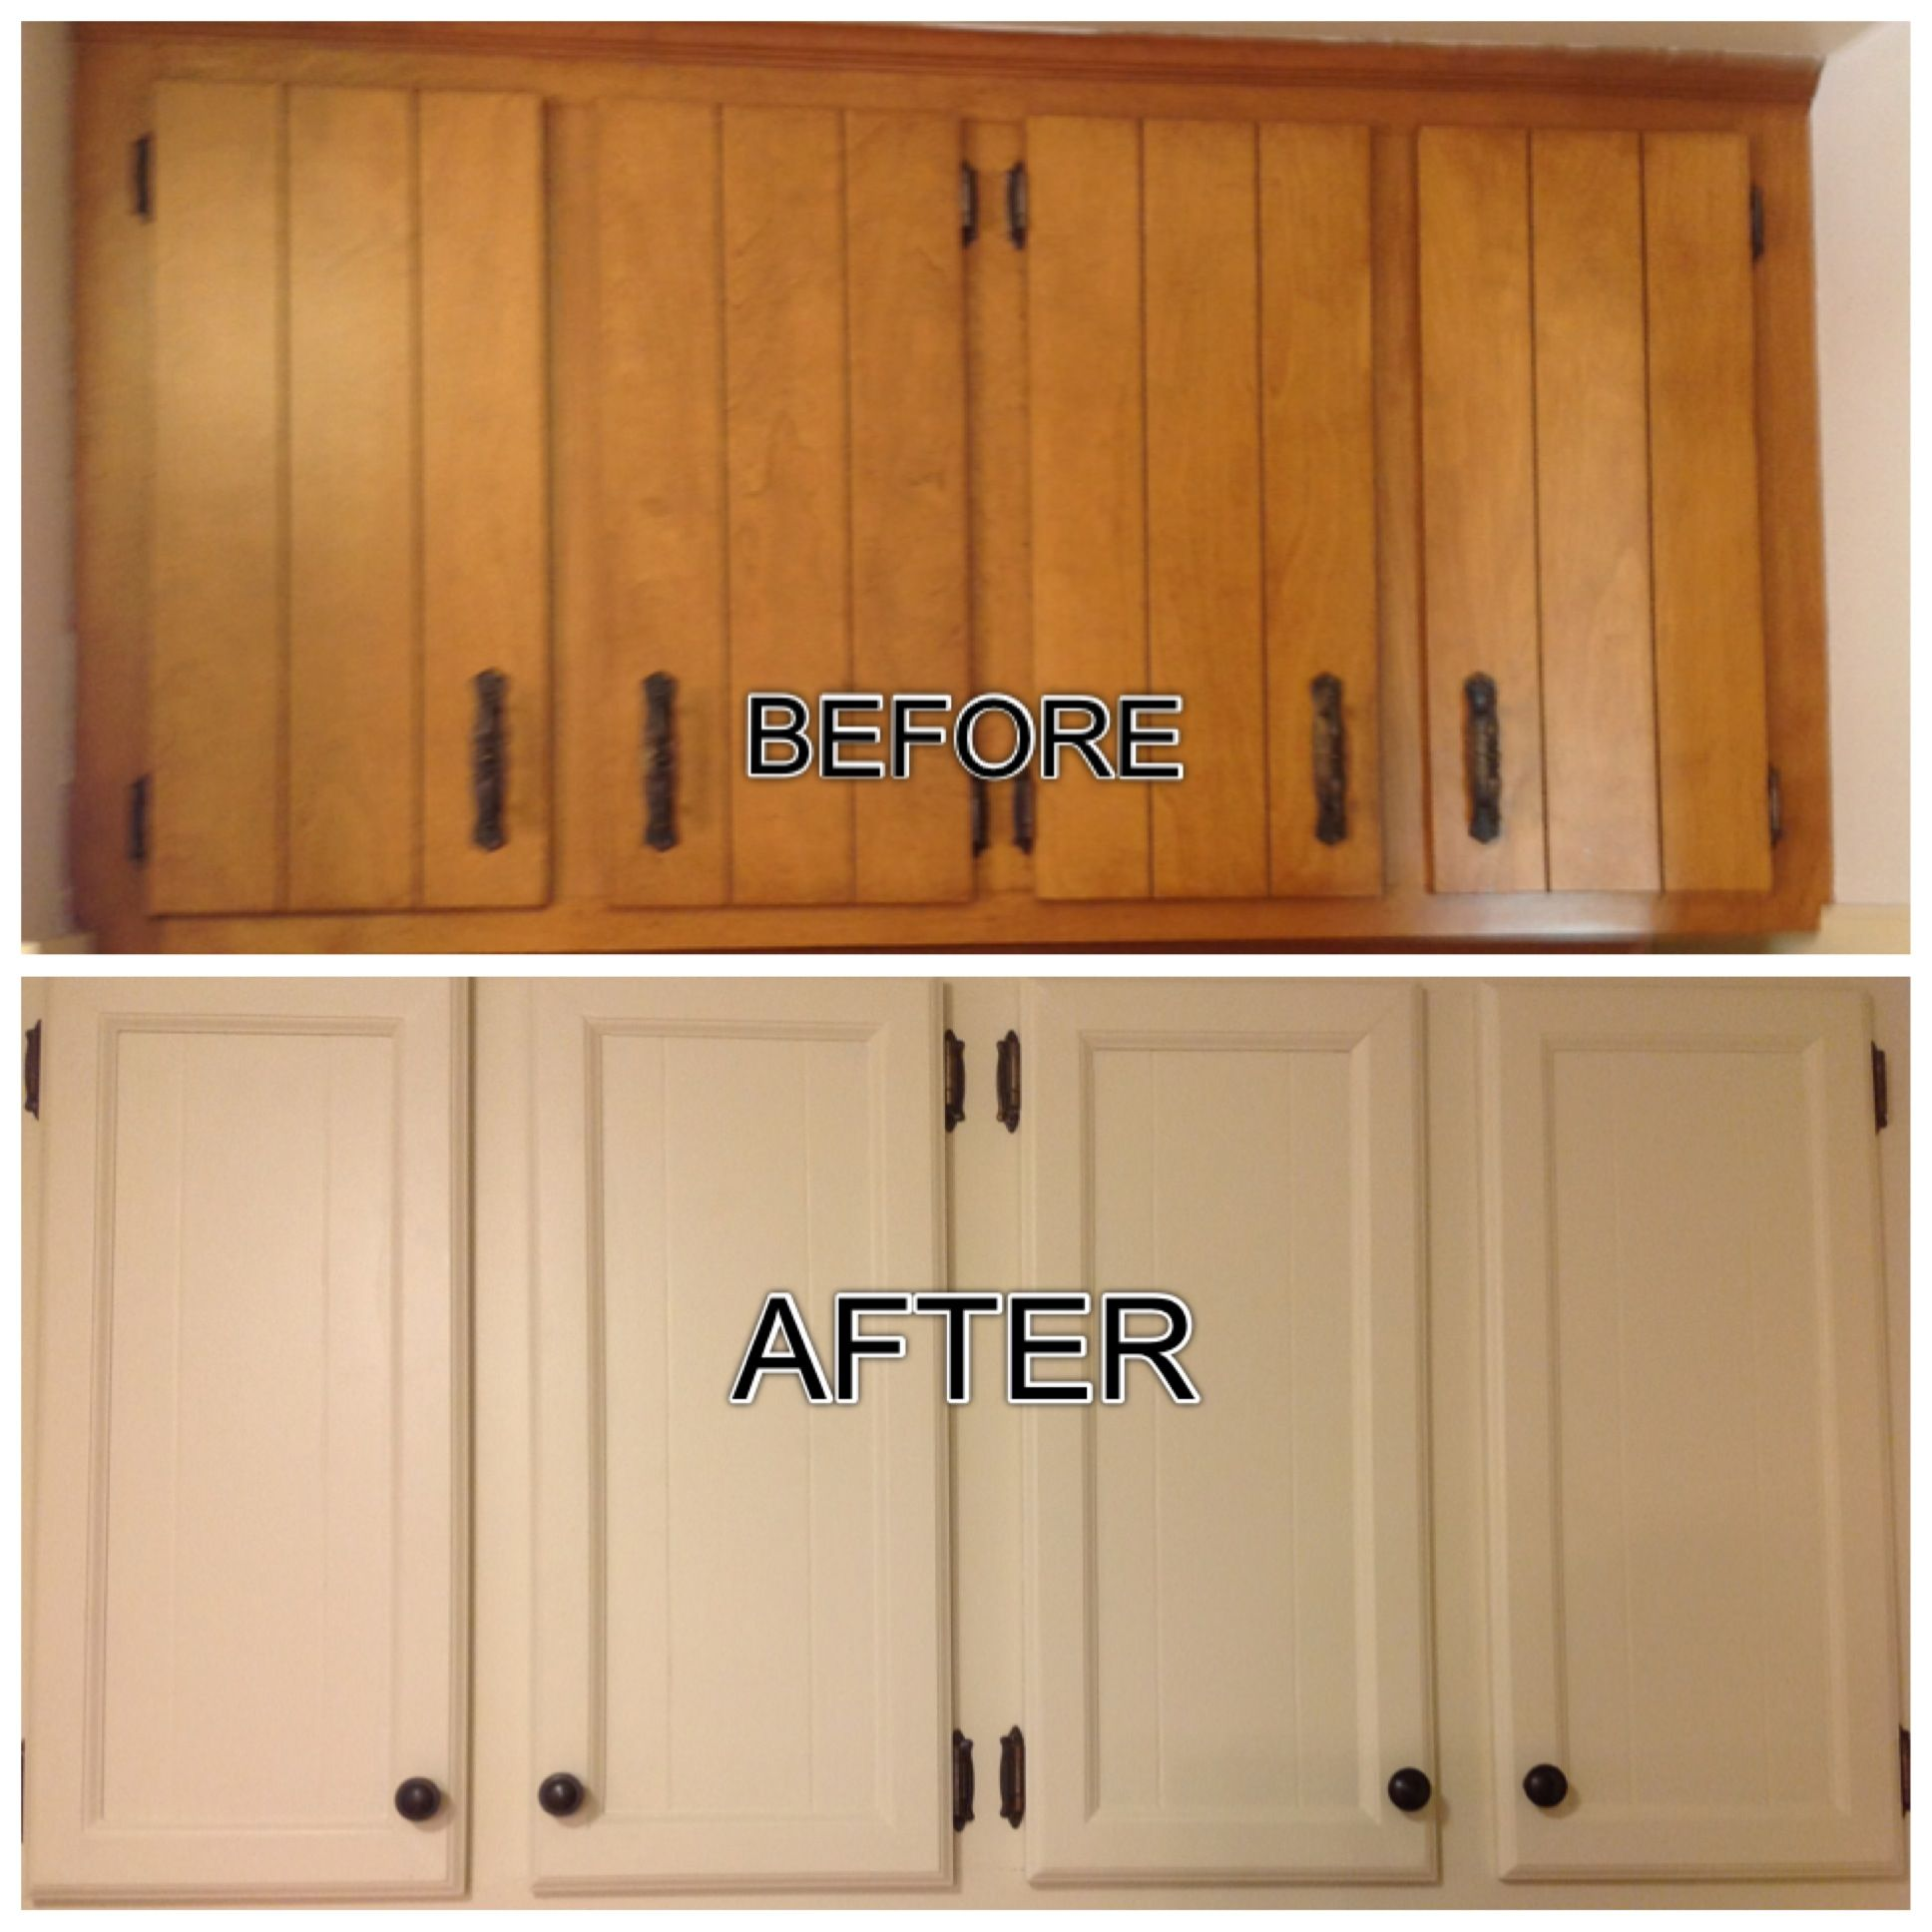 Best Paint For New Kitchen Cabinets: Updated Outdated 1970's Cabinets. Filled The Grooves